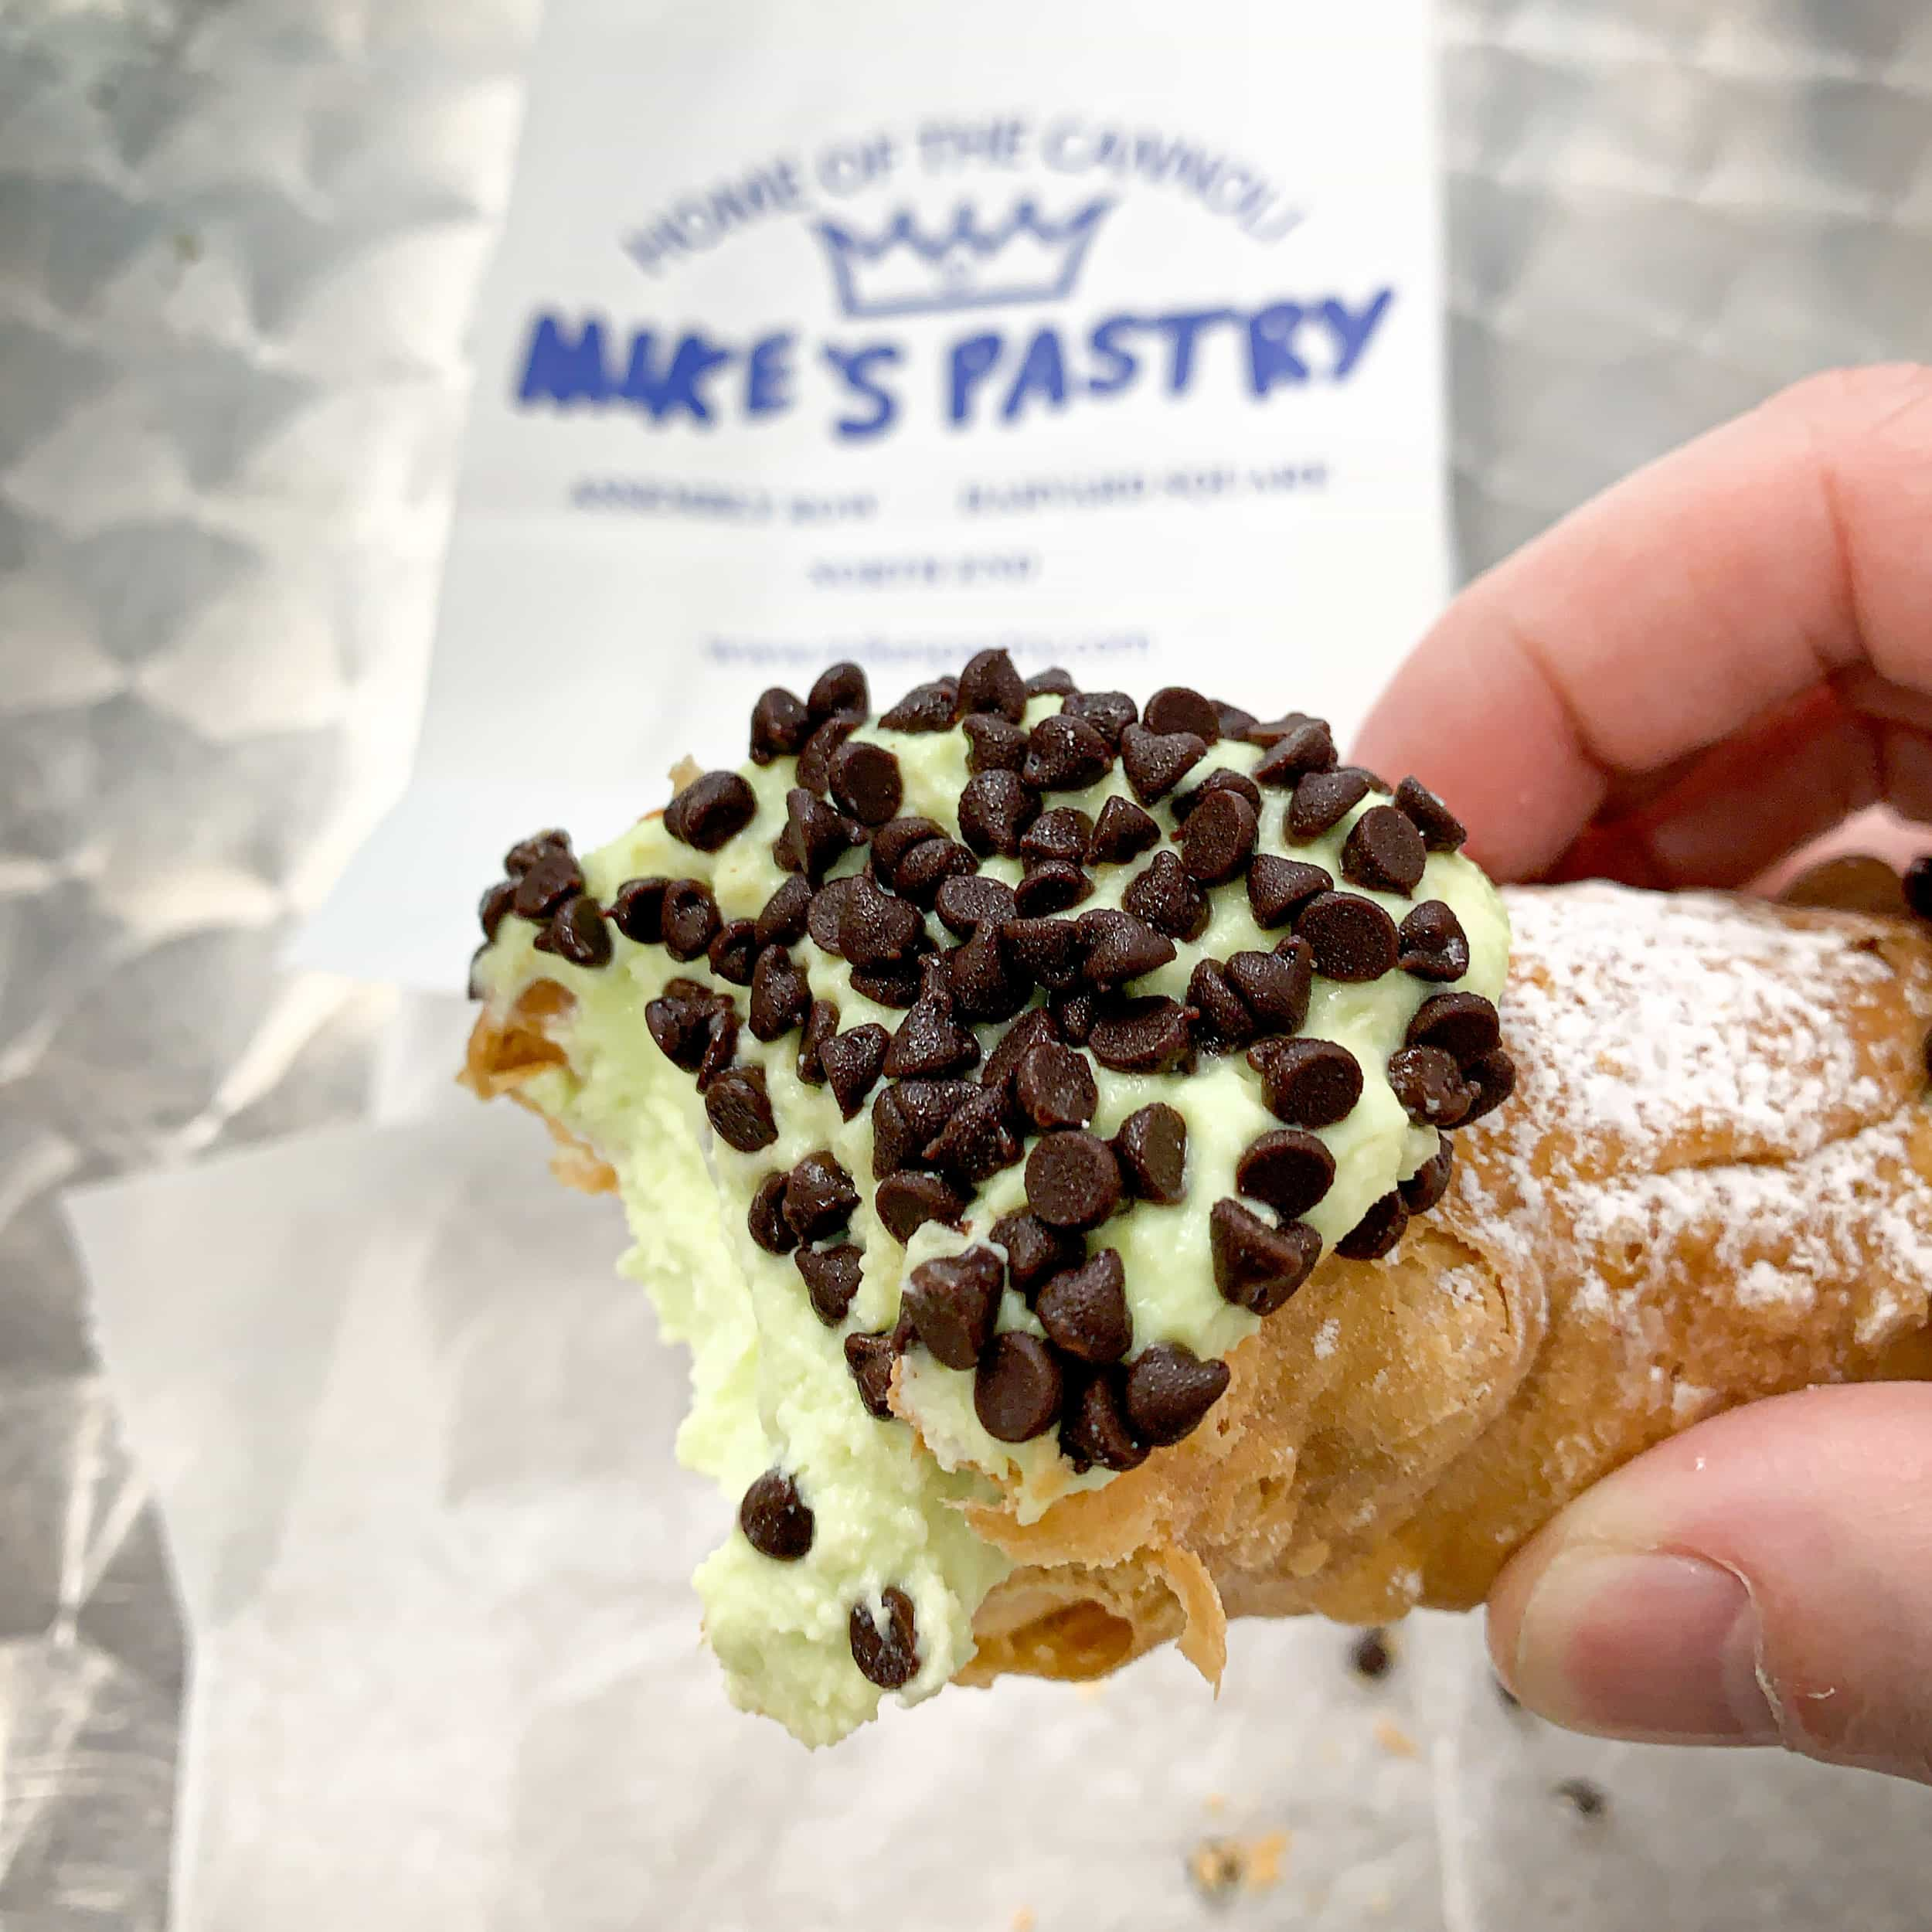 Mint chocolate chip cannoli is one of many delicious Boston foodie experiences you must try in the city.